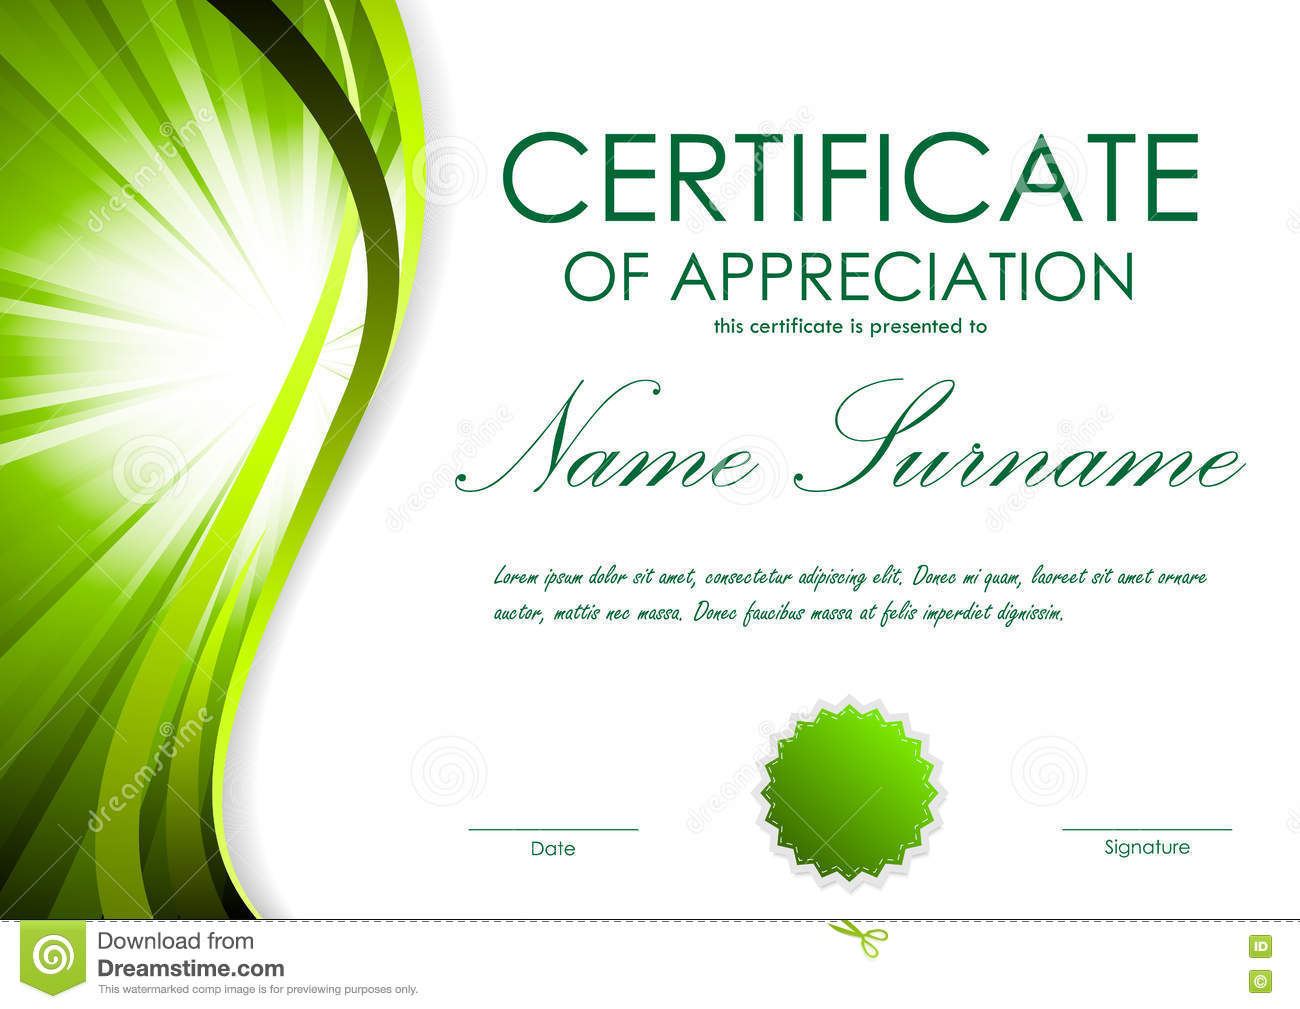 Free templates for certificate of appreciation gidiye free templates for certificate of appreciation free certificate of appreciation template purple border yadclub Images